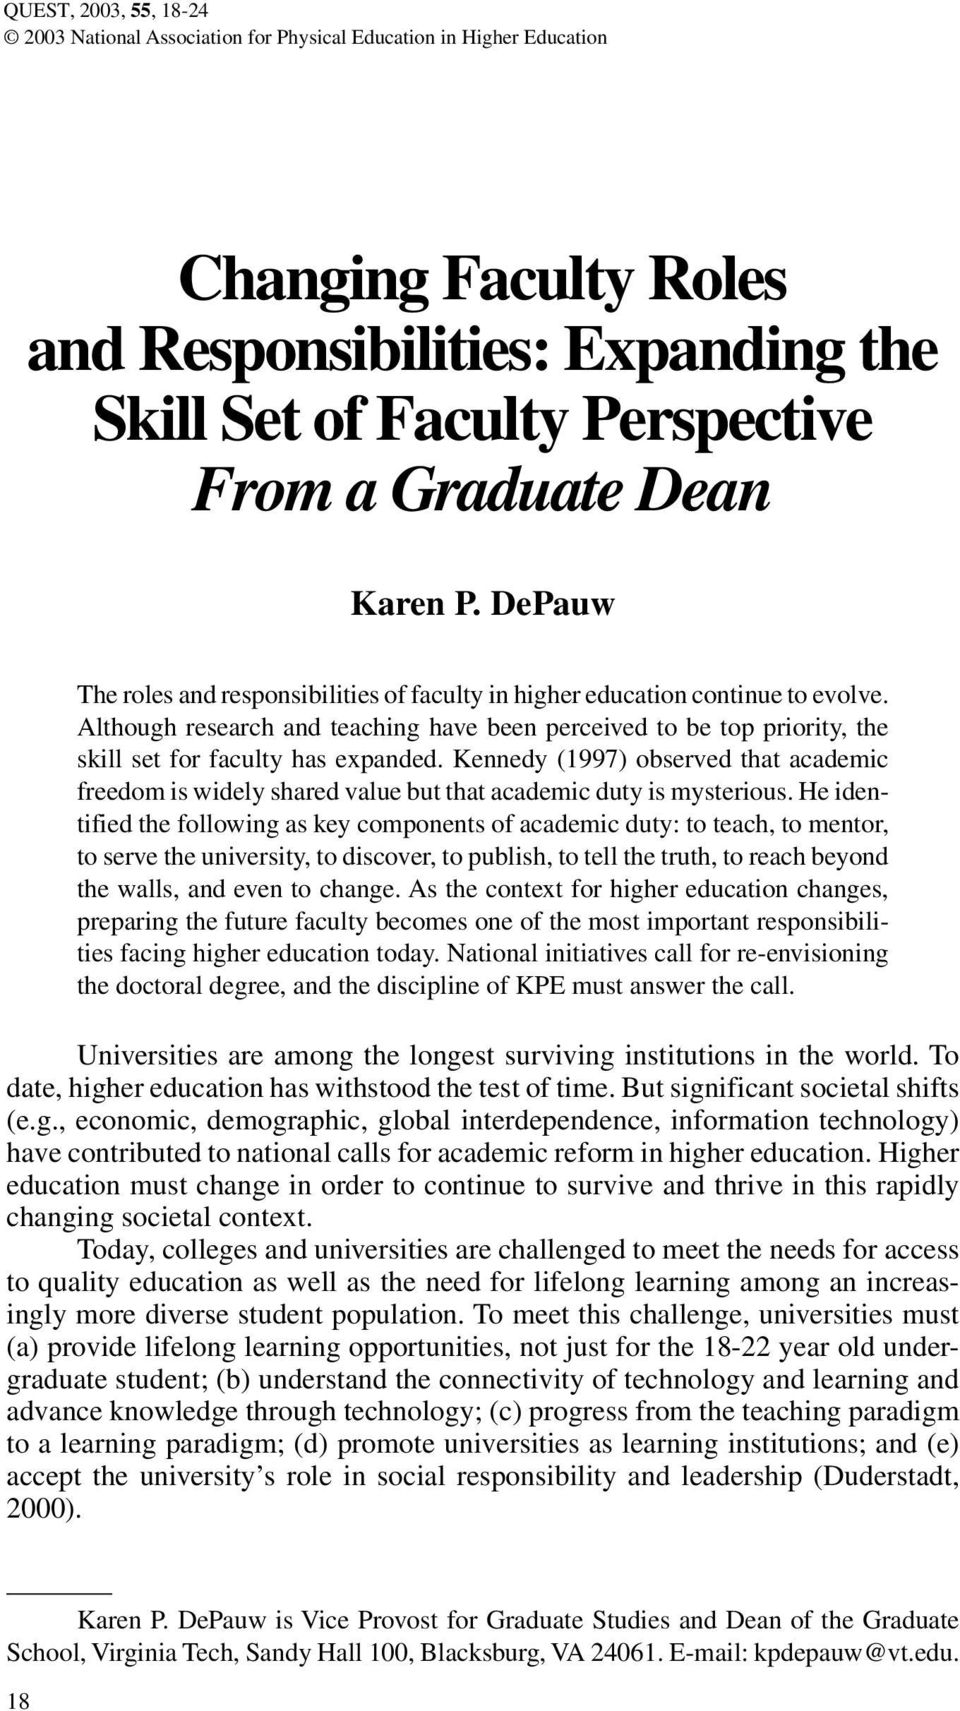 Although research and teaching have been perceived to be top priority, the skill set for faculty has expanded.